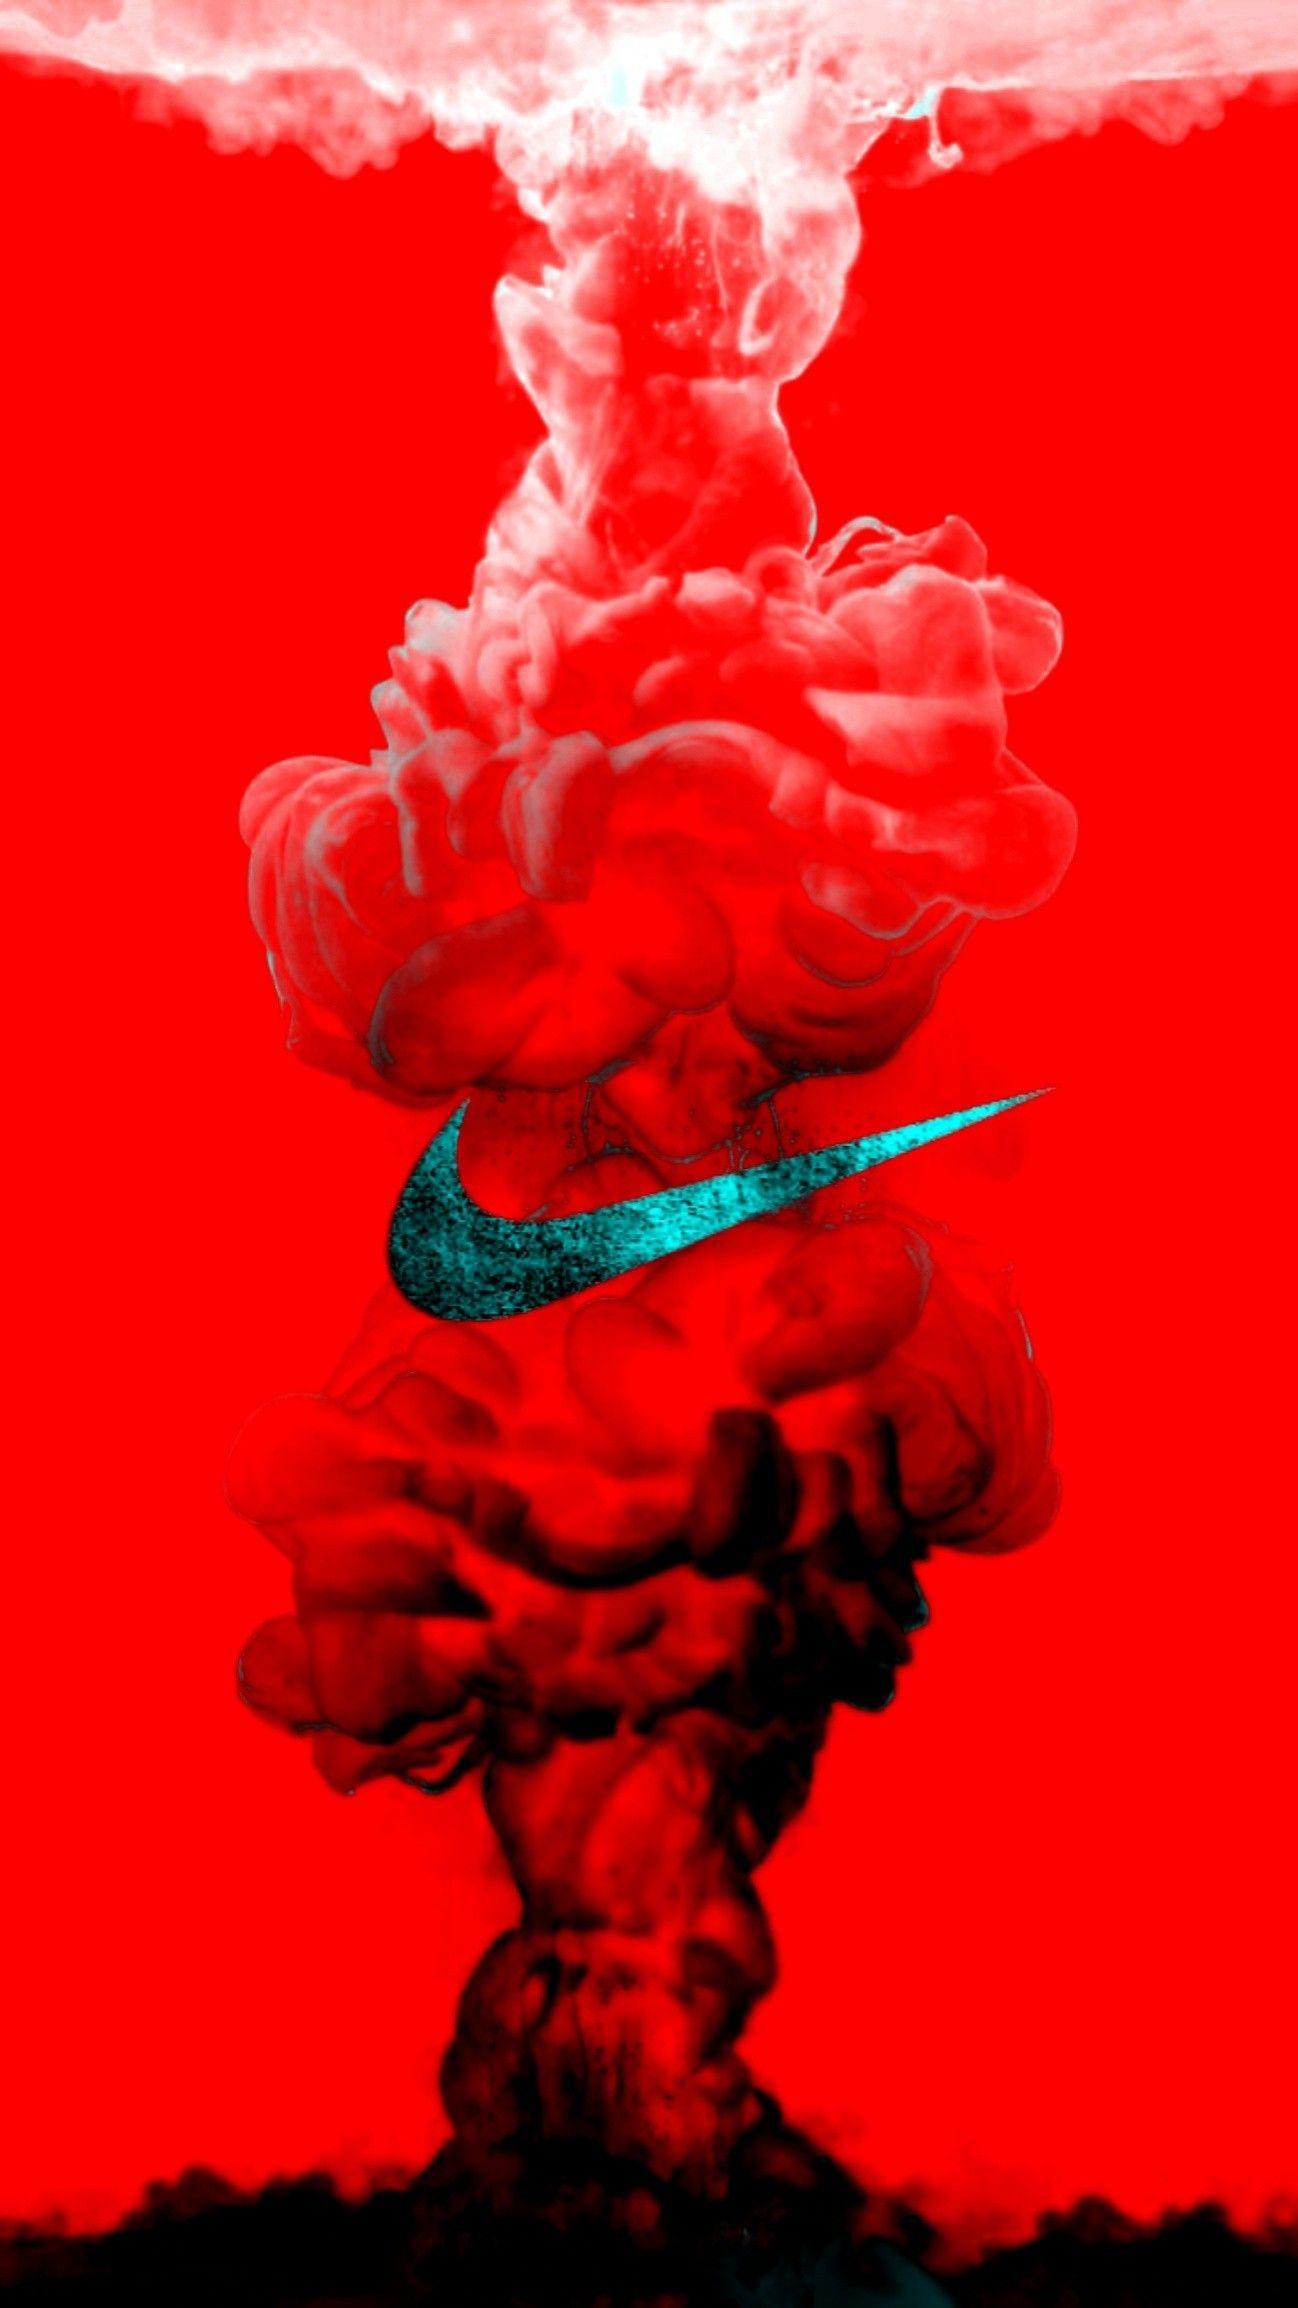 Pin By Hooter S Konceptz On Nike Wallpaper Nike Wallpaper Nike Wallpaper Backgrounds Nike Wallpaper Iphone